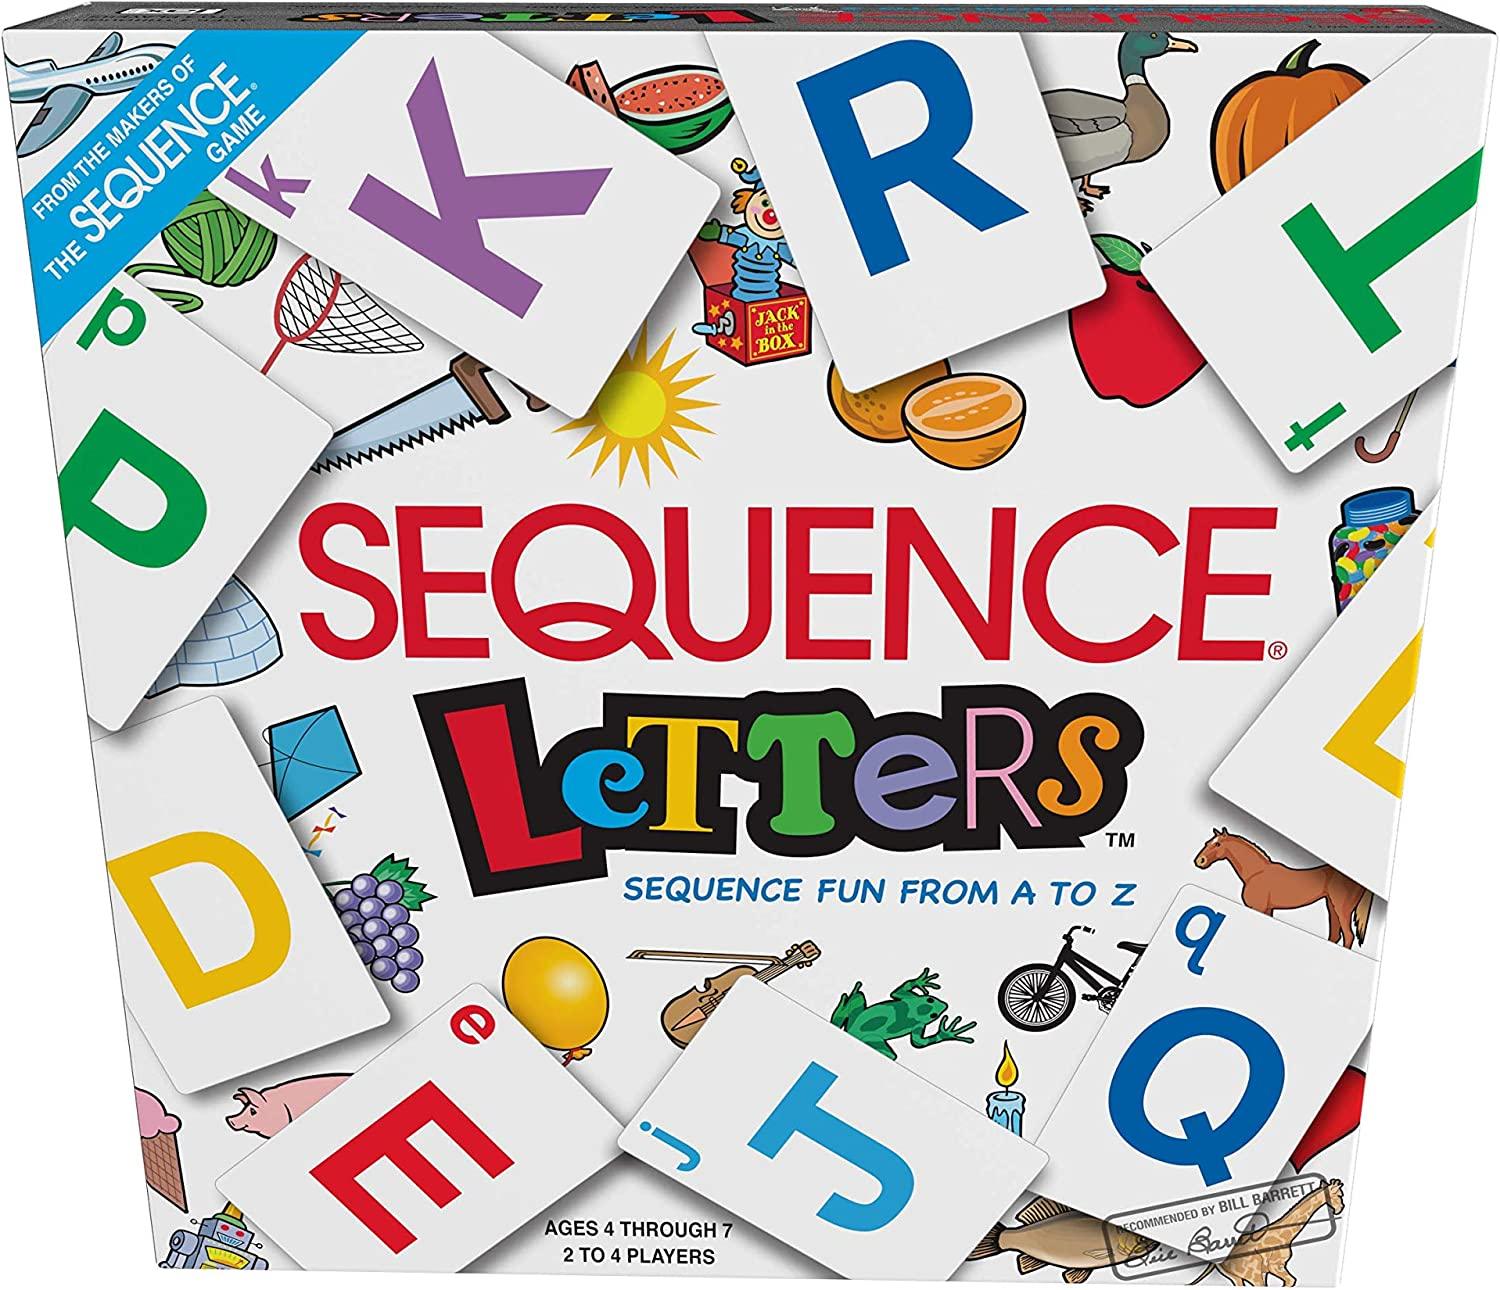 Amazon Com Sequence Letters By Jax Sequence Fun From A To Z Toys Games